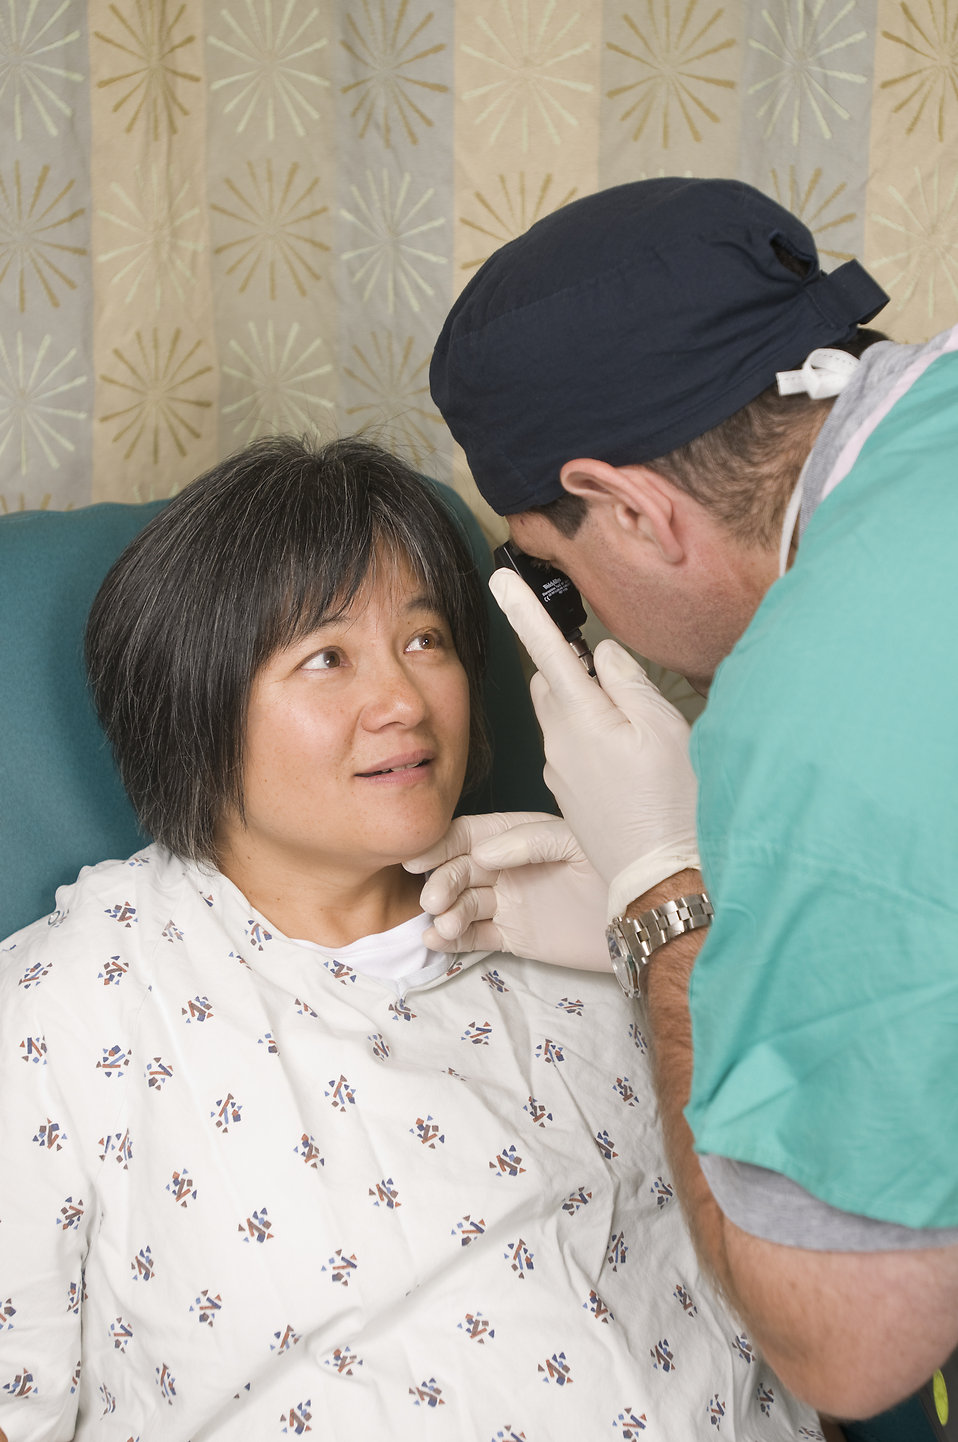 A female patient being examined by her doctor : Free Stock Photo